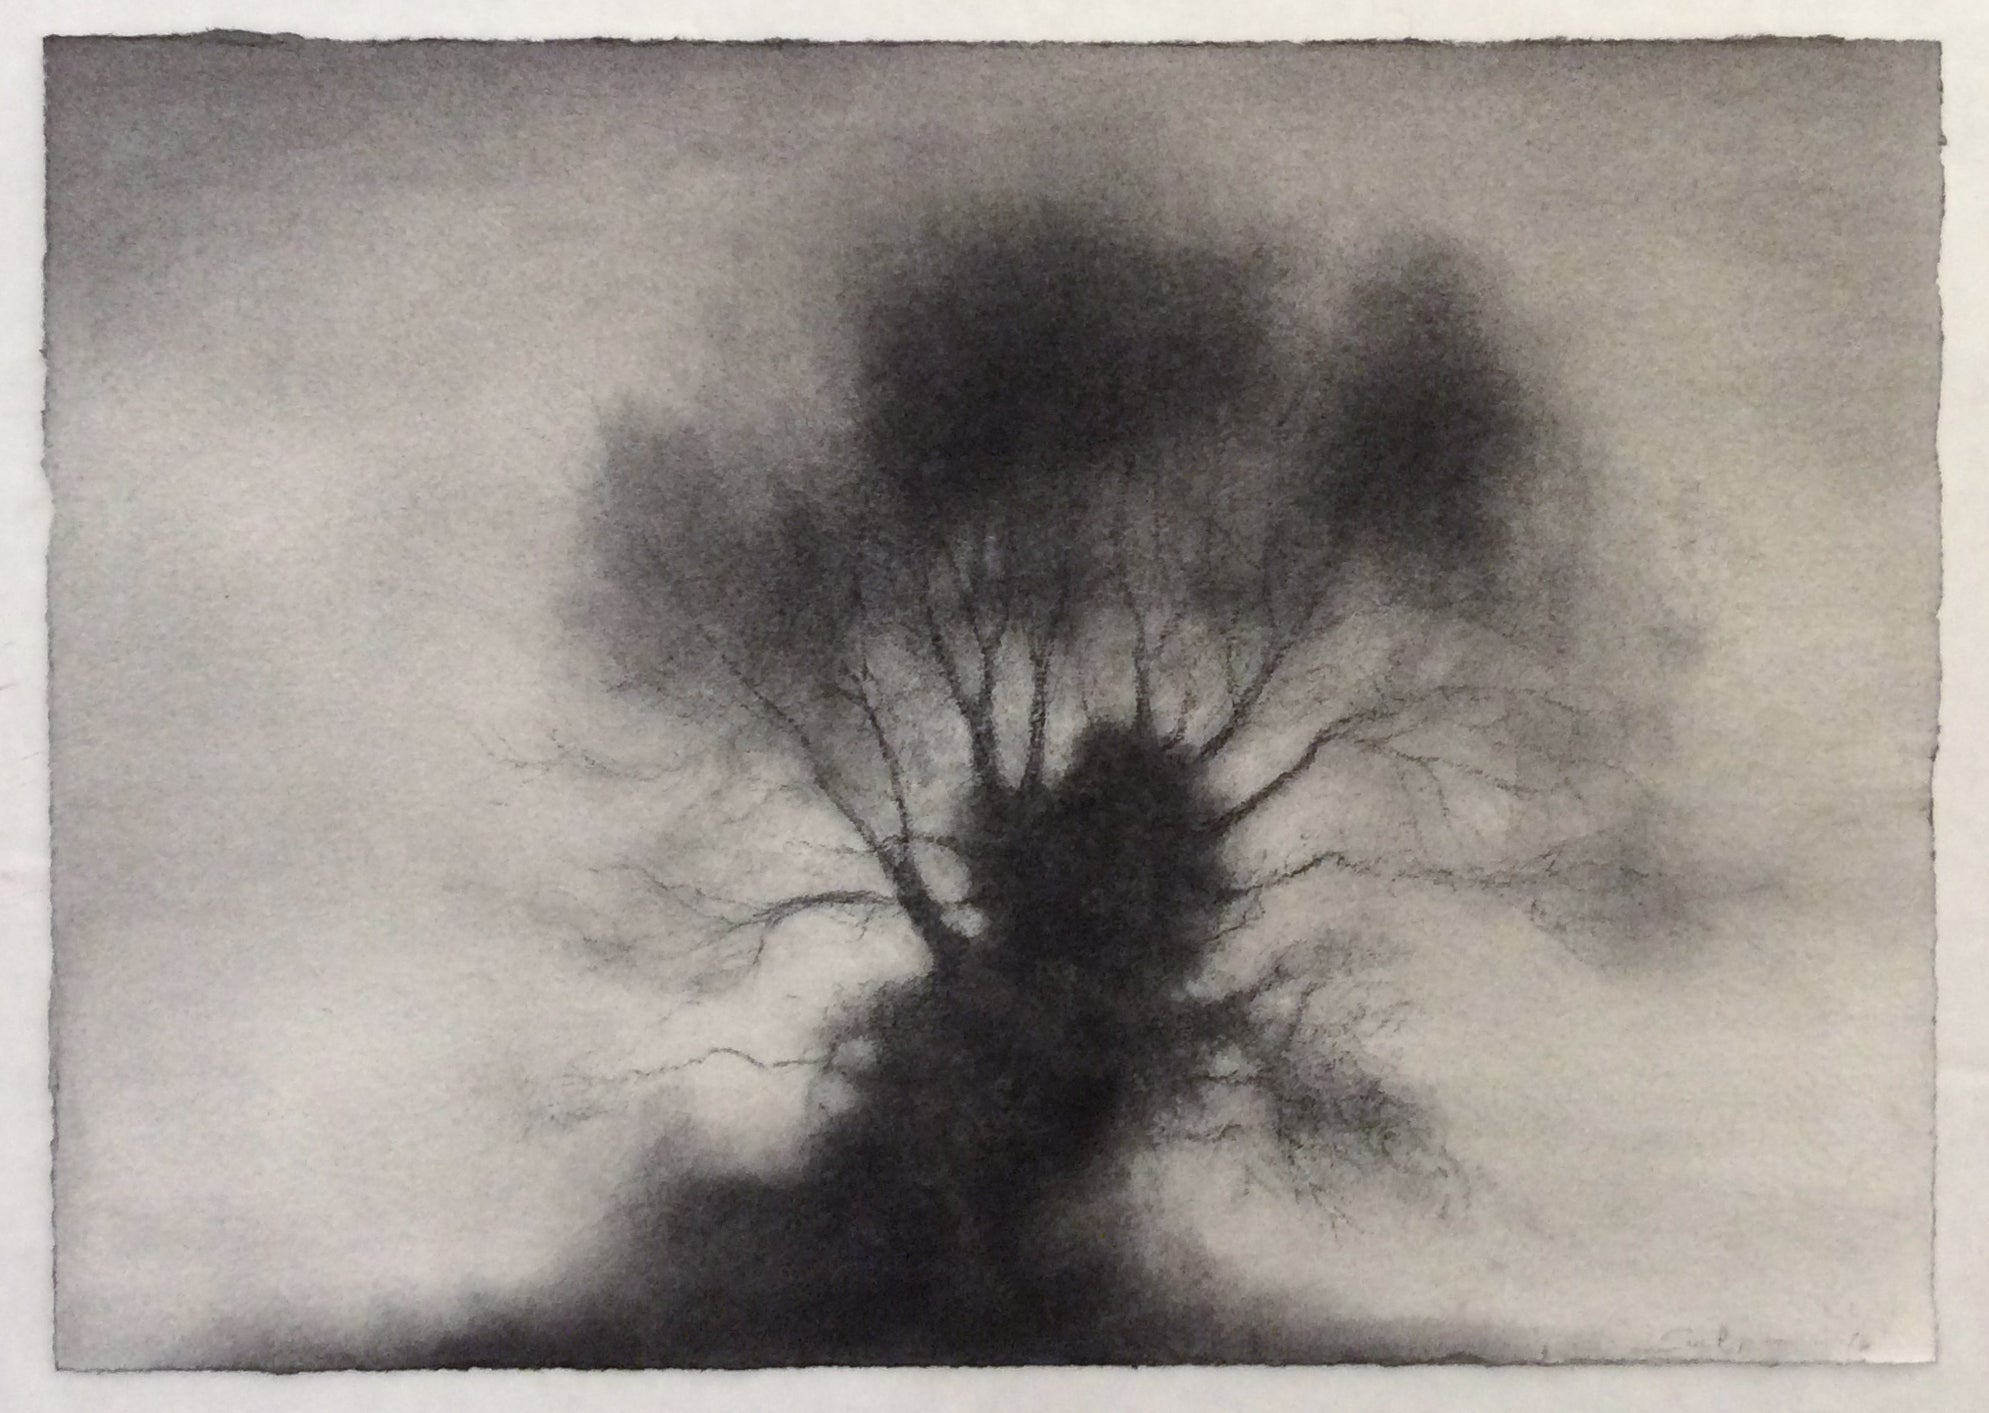 Kernel realist black white charcoal drawing of large single standing tree